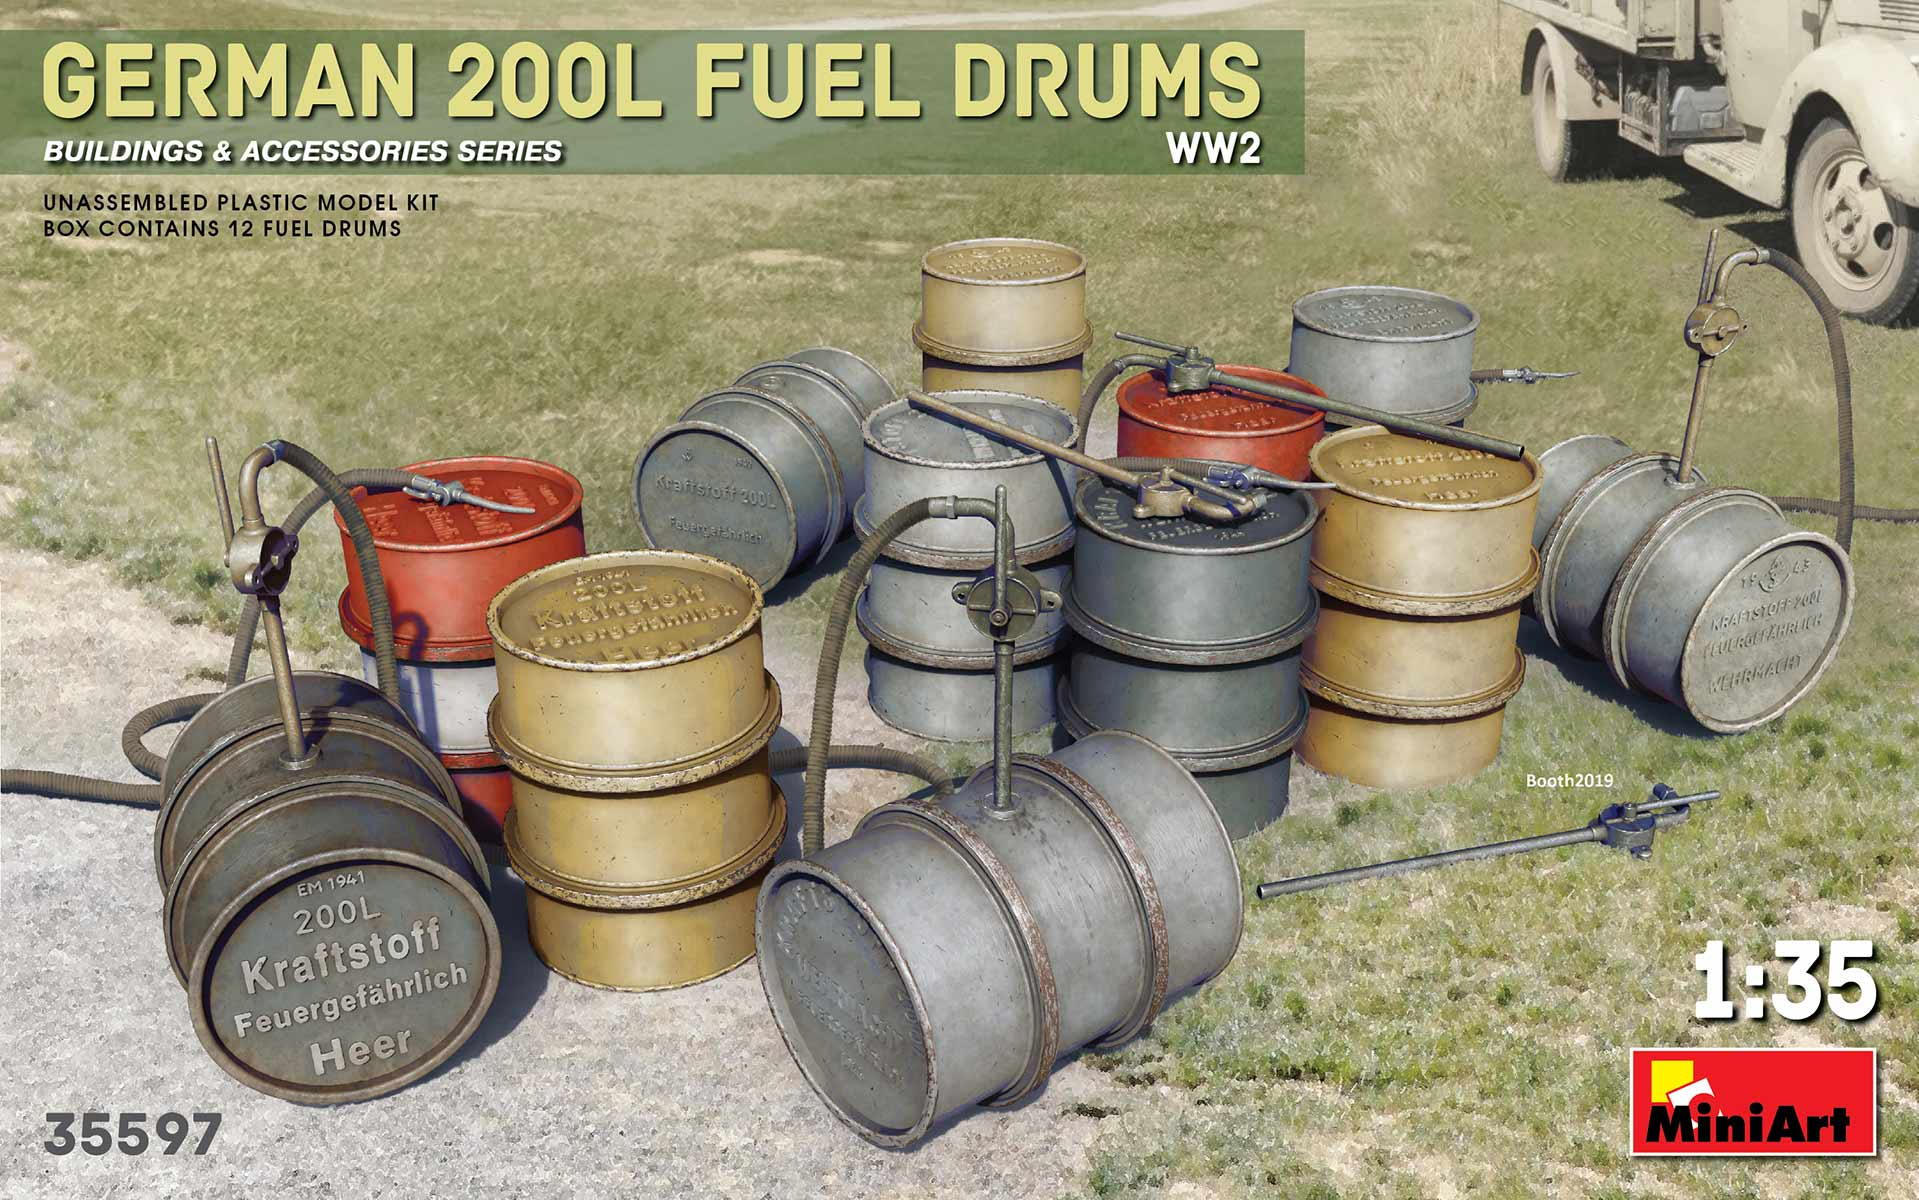 MiniArt 1/35 GERMAN 200L FUEL DRUMS WW2 # 35597